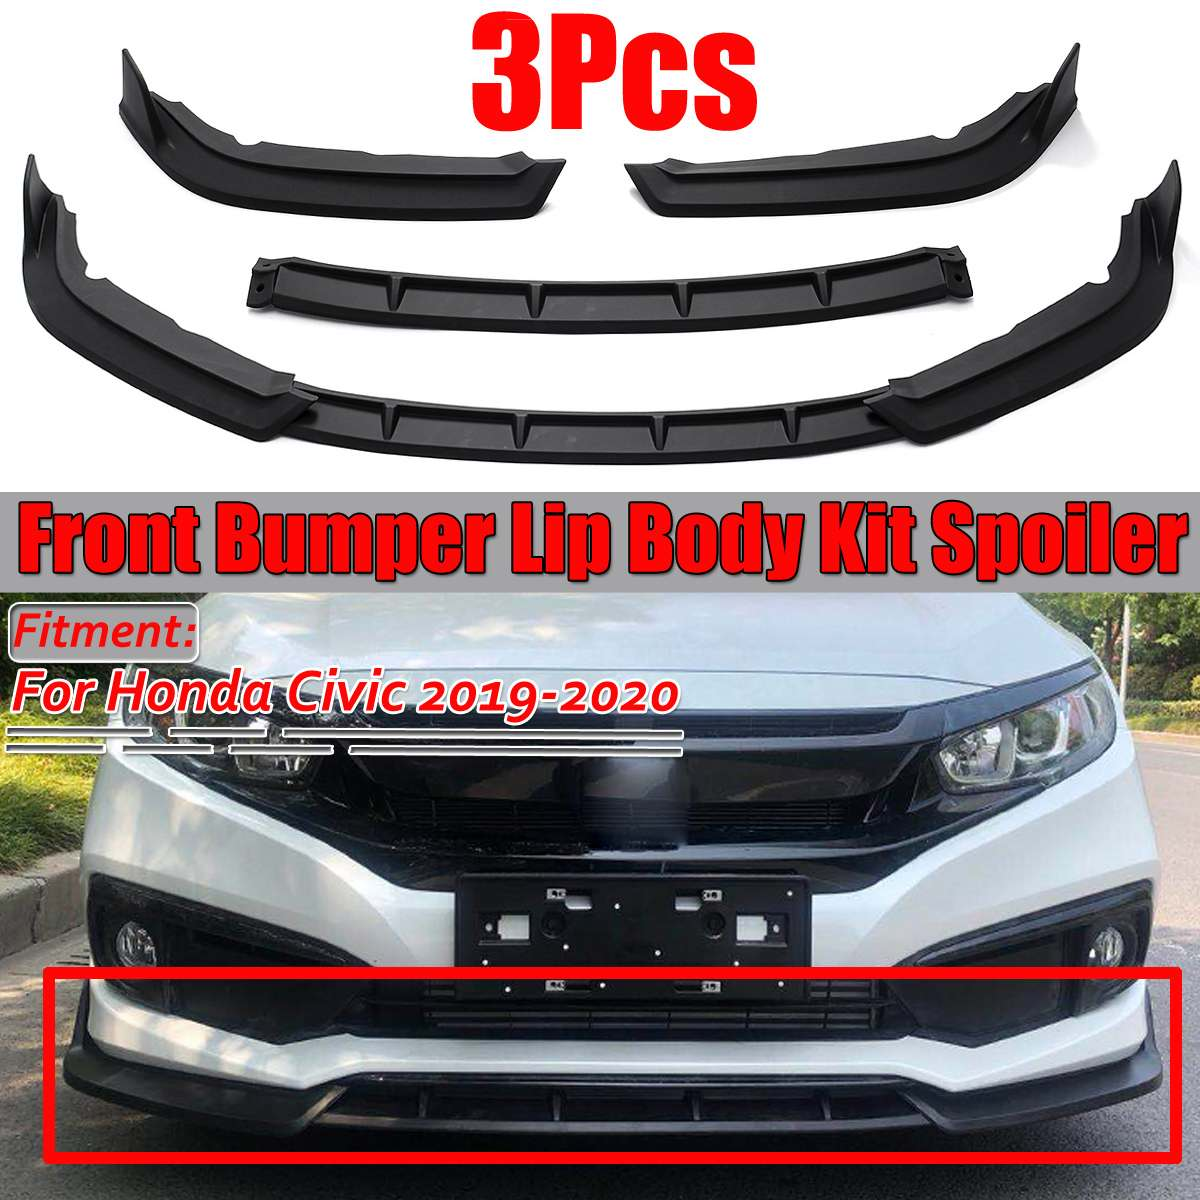 2019 3PCS Car Front Bumper Splitter Lip Diffuser Lip Body Kit Protector Spoiler Guard Cover Trim For Honda For <font><b>Civic</b></font> 2019 2020 image